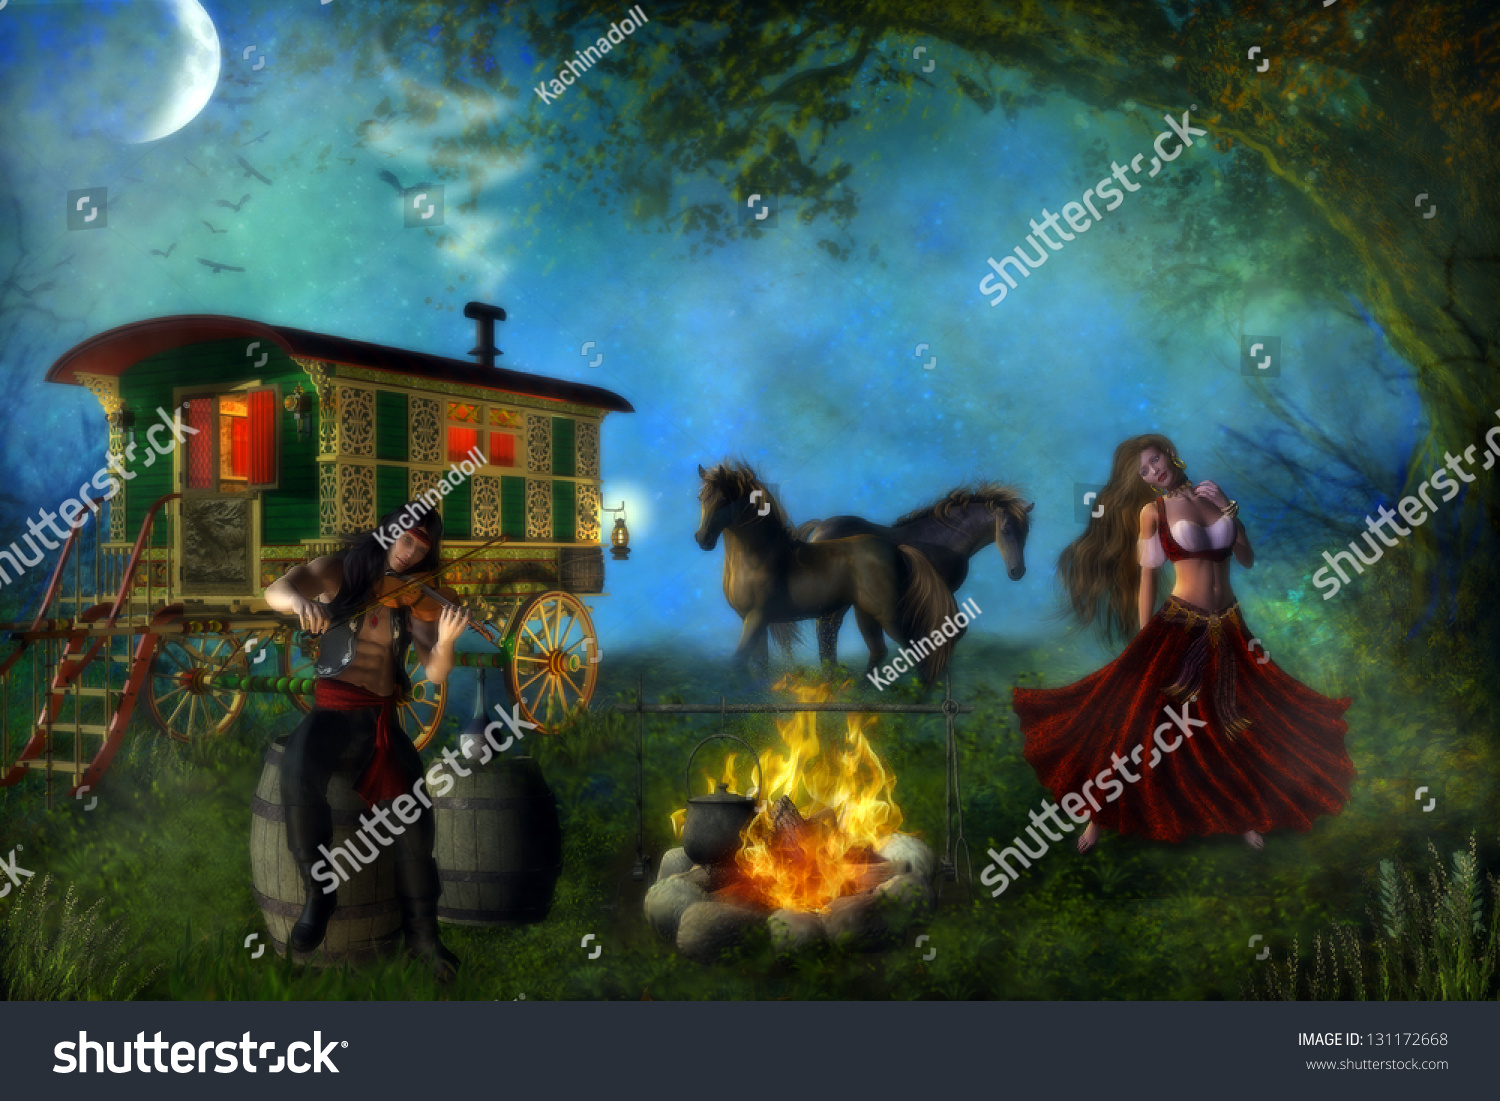 Image result for horse dancing with gypsies